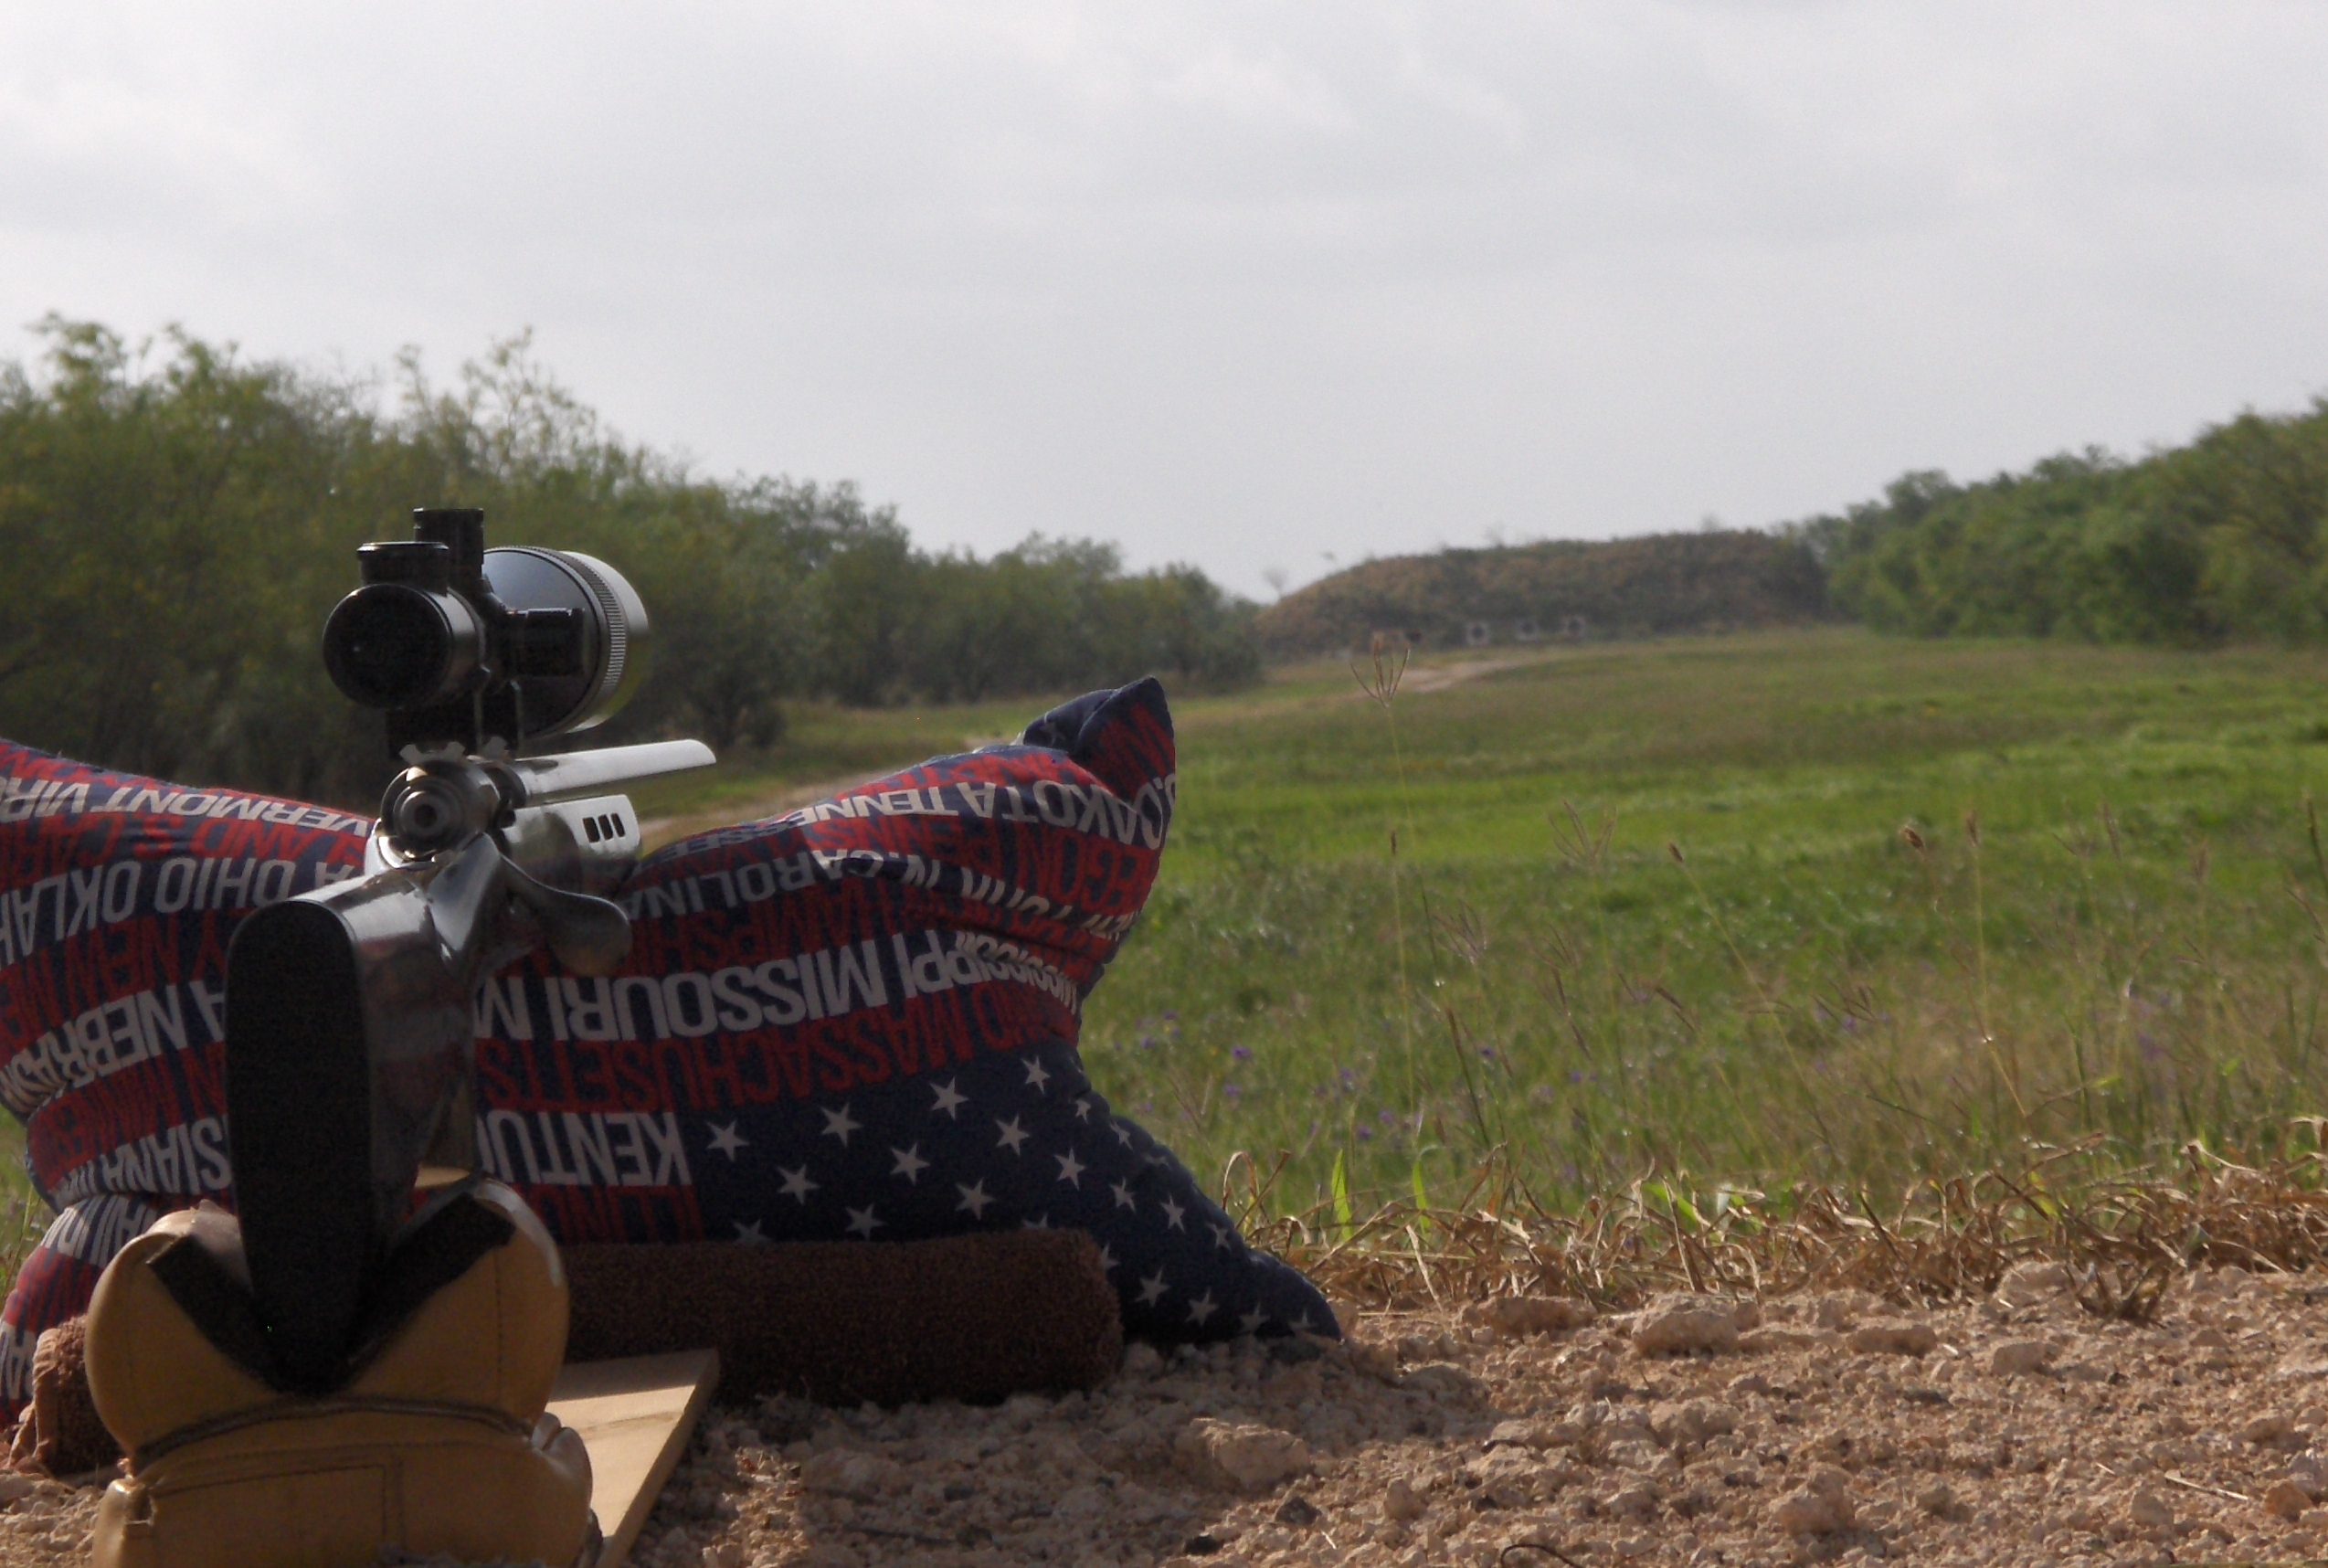 Ground eye view of the targets at 600 yards